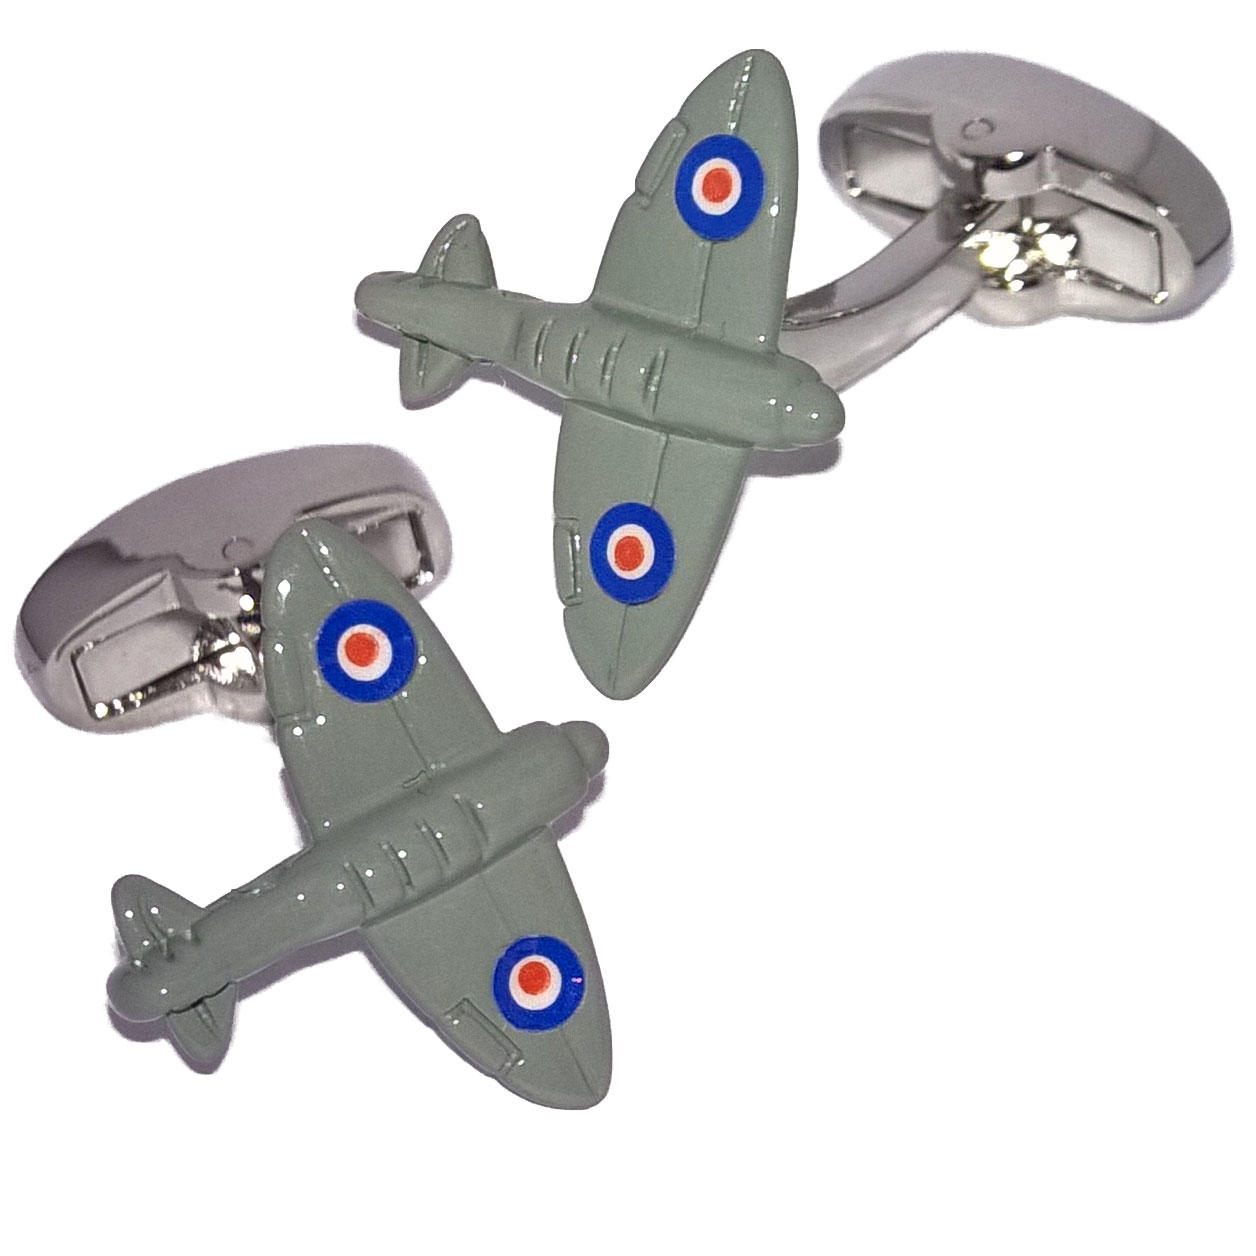 Spitfire Cufflinks from Cuffs & Co